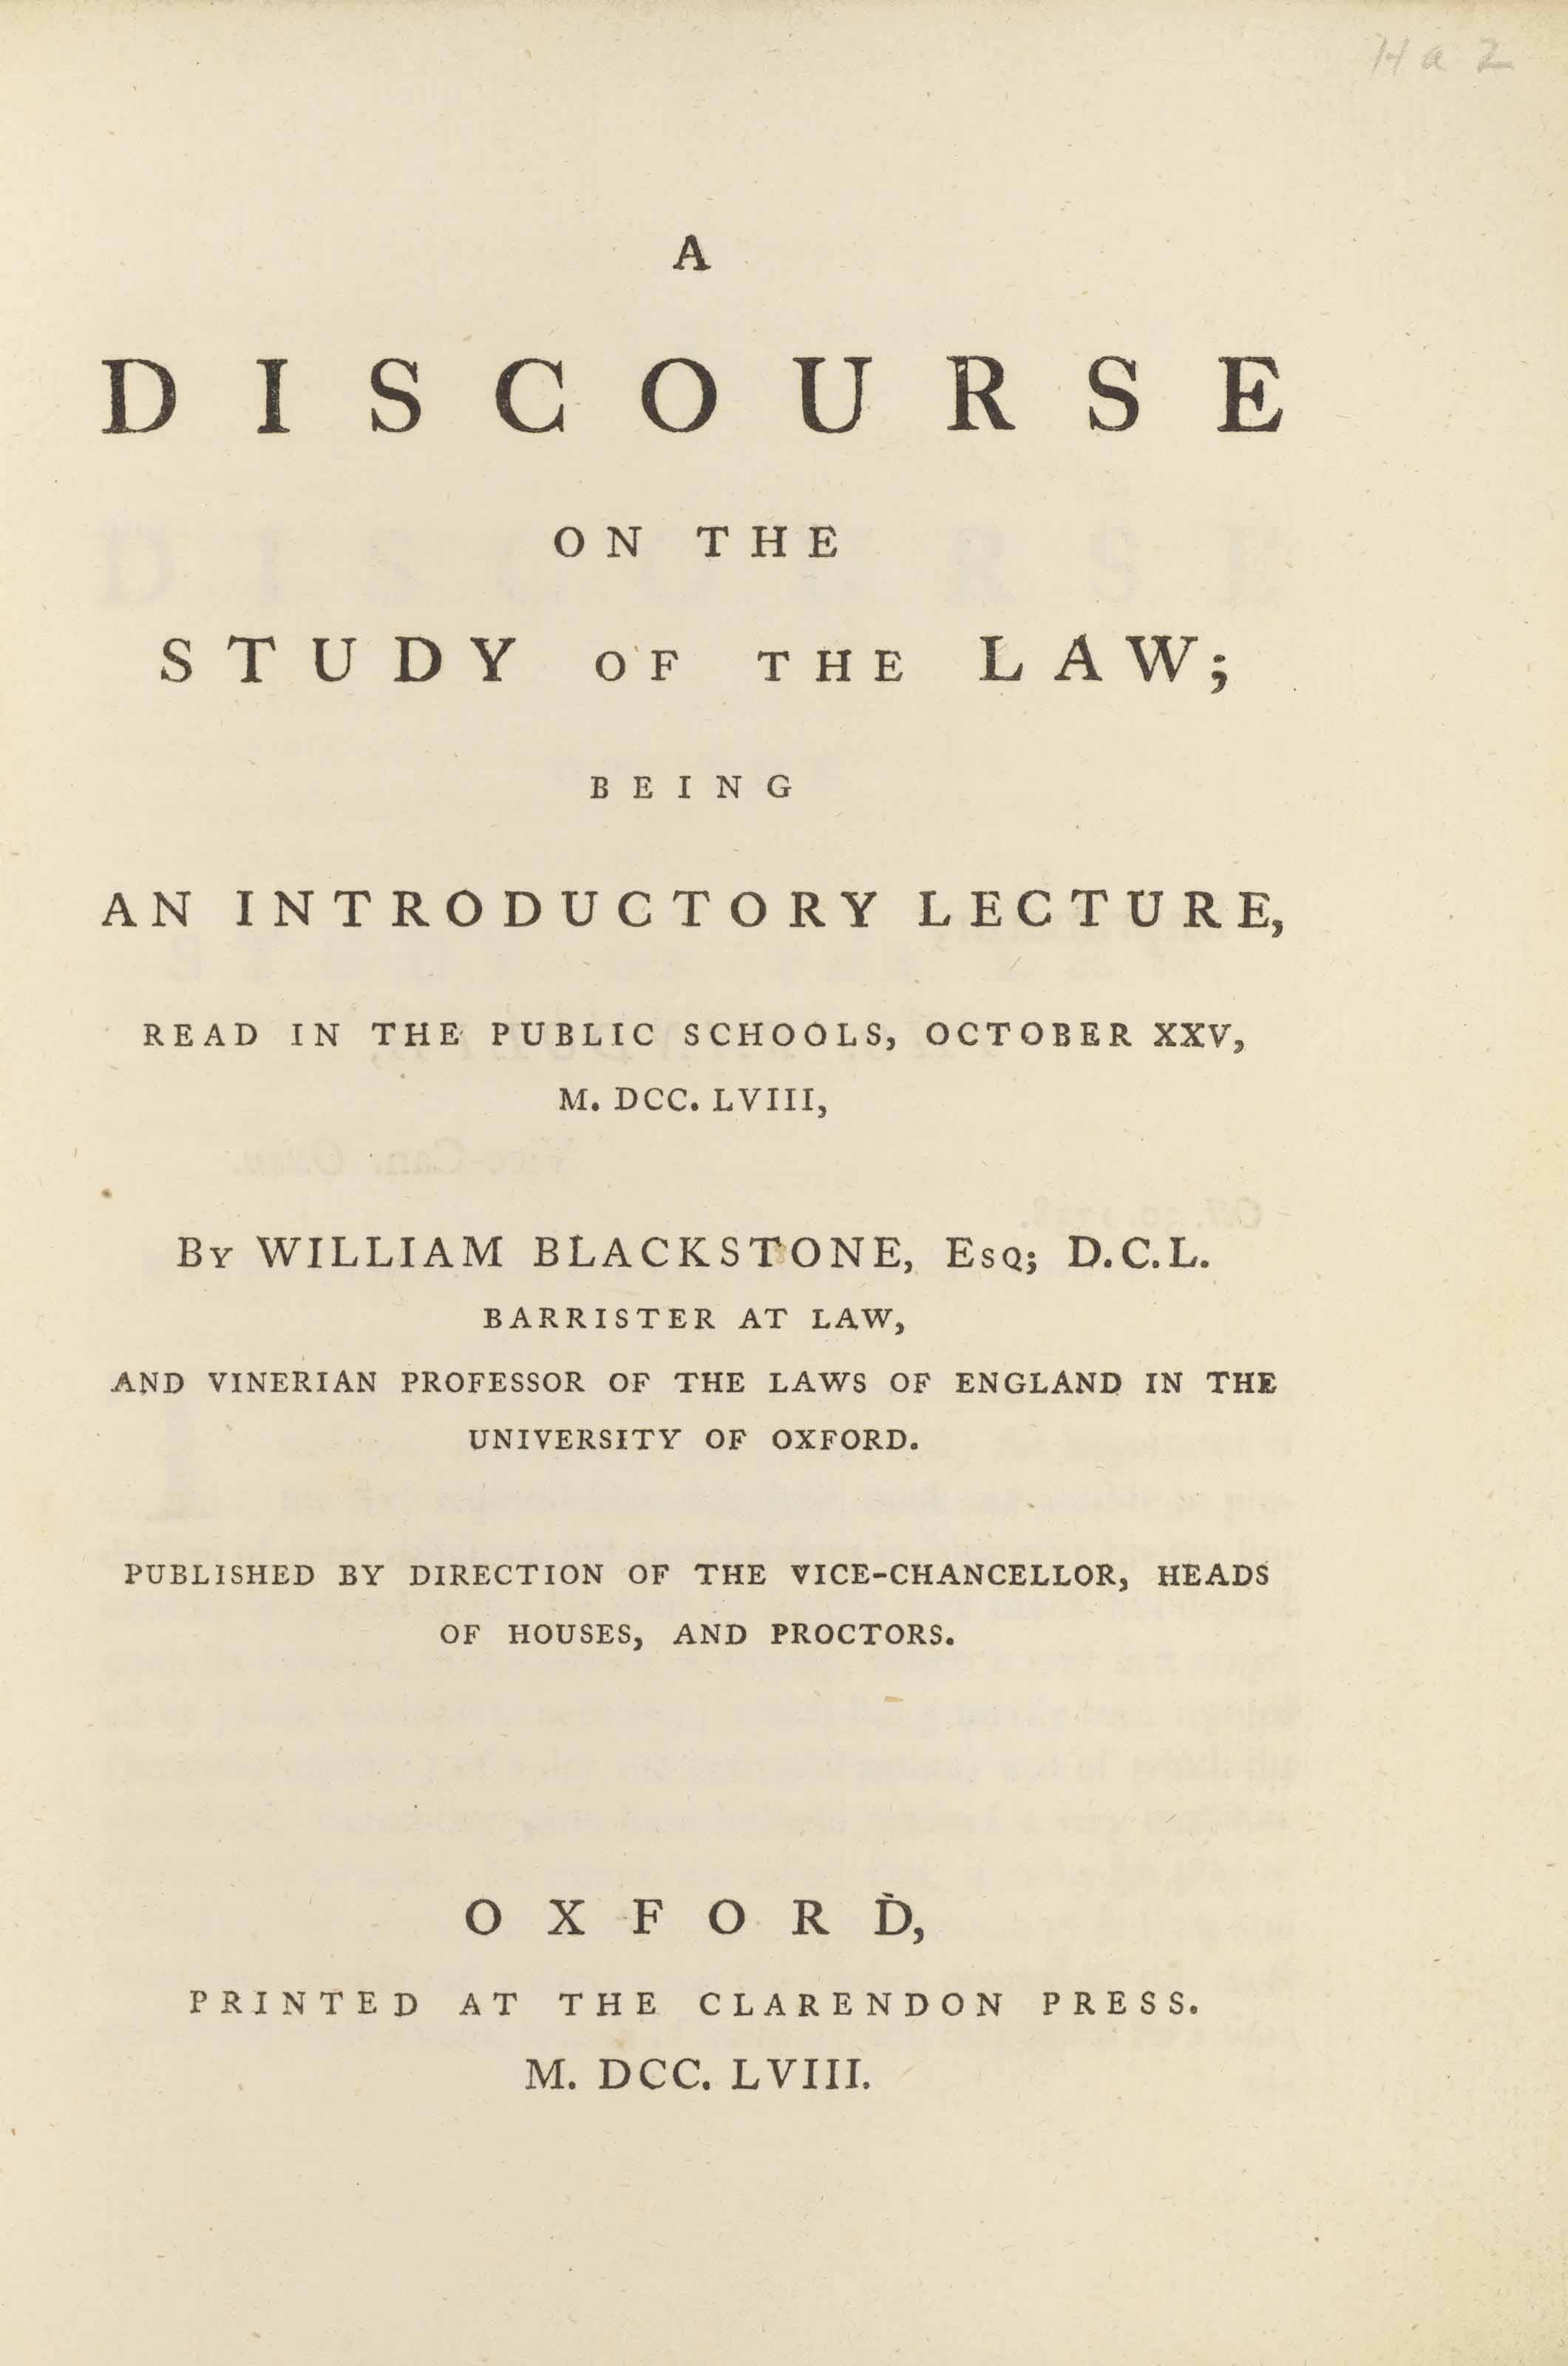 BLACKSTONE, William (1723-1780)  A Discourse on the Study of the Law